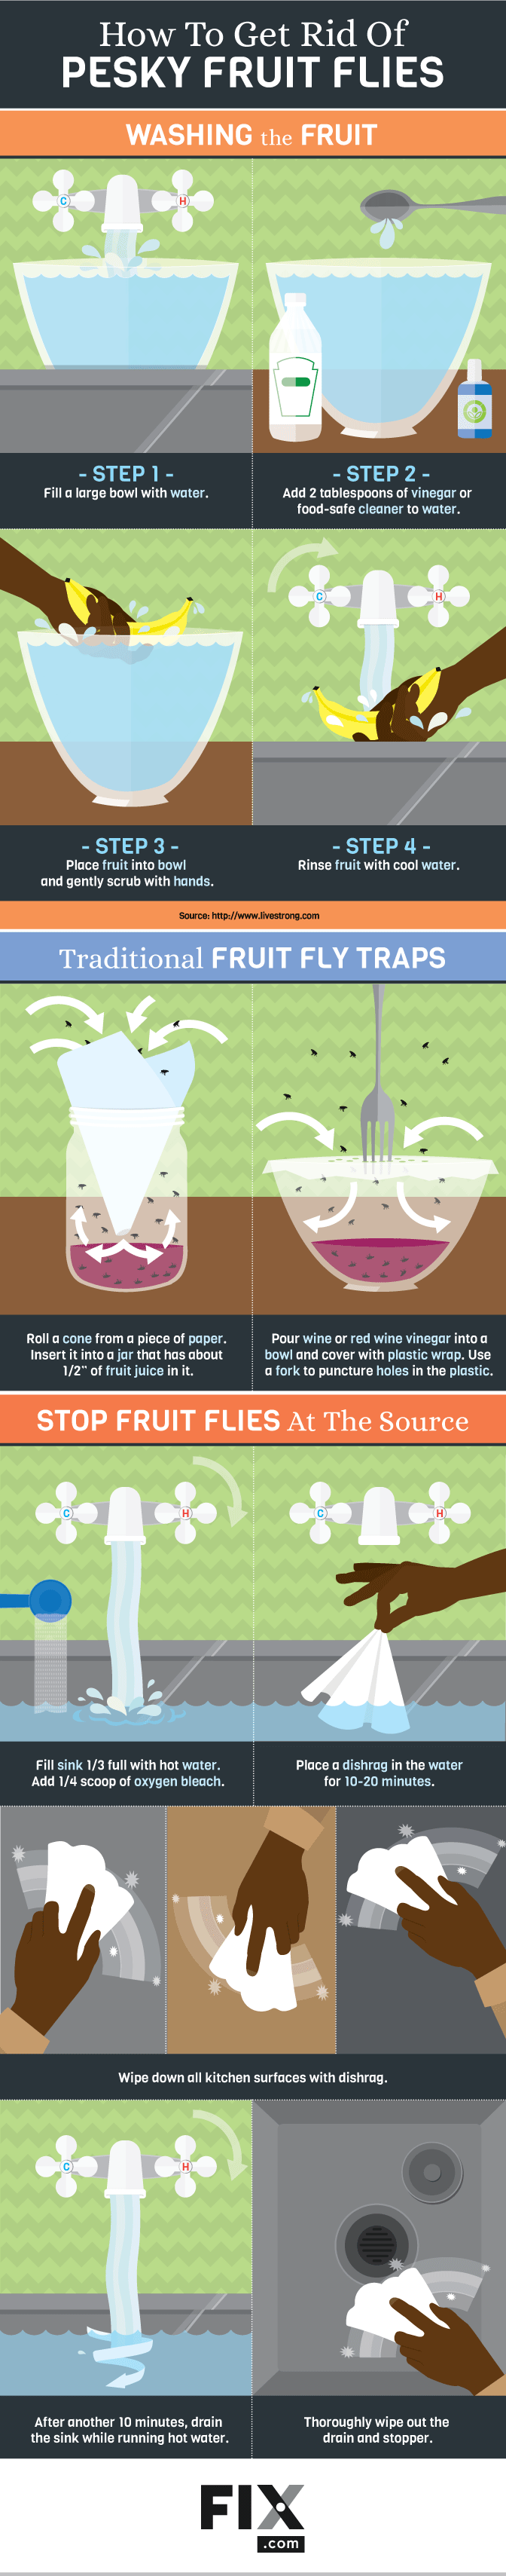 How to really get rid of pesky fruit flies body paint pinterest